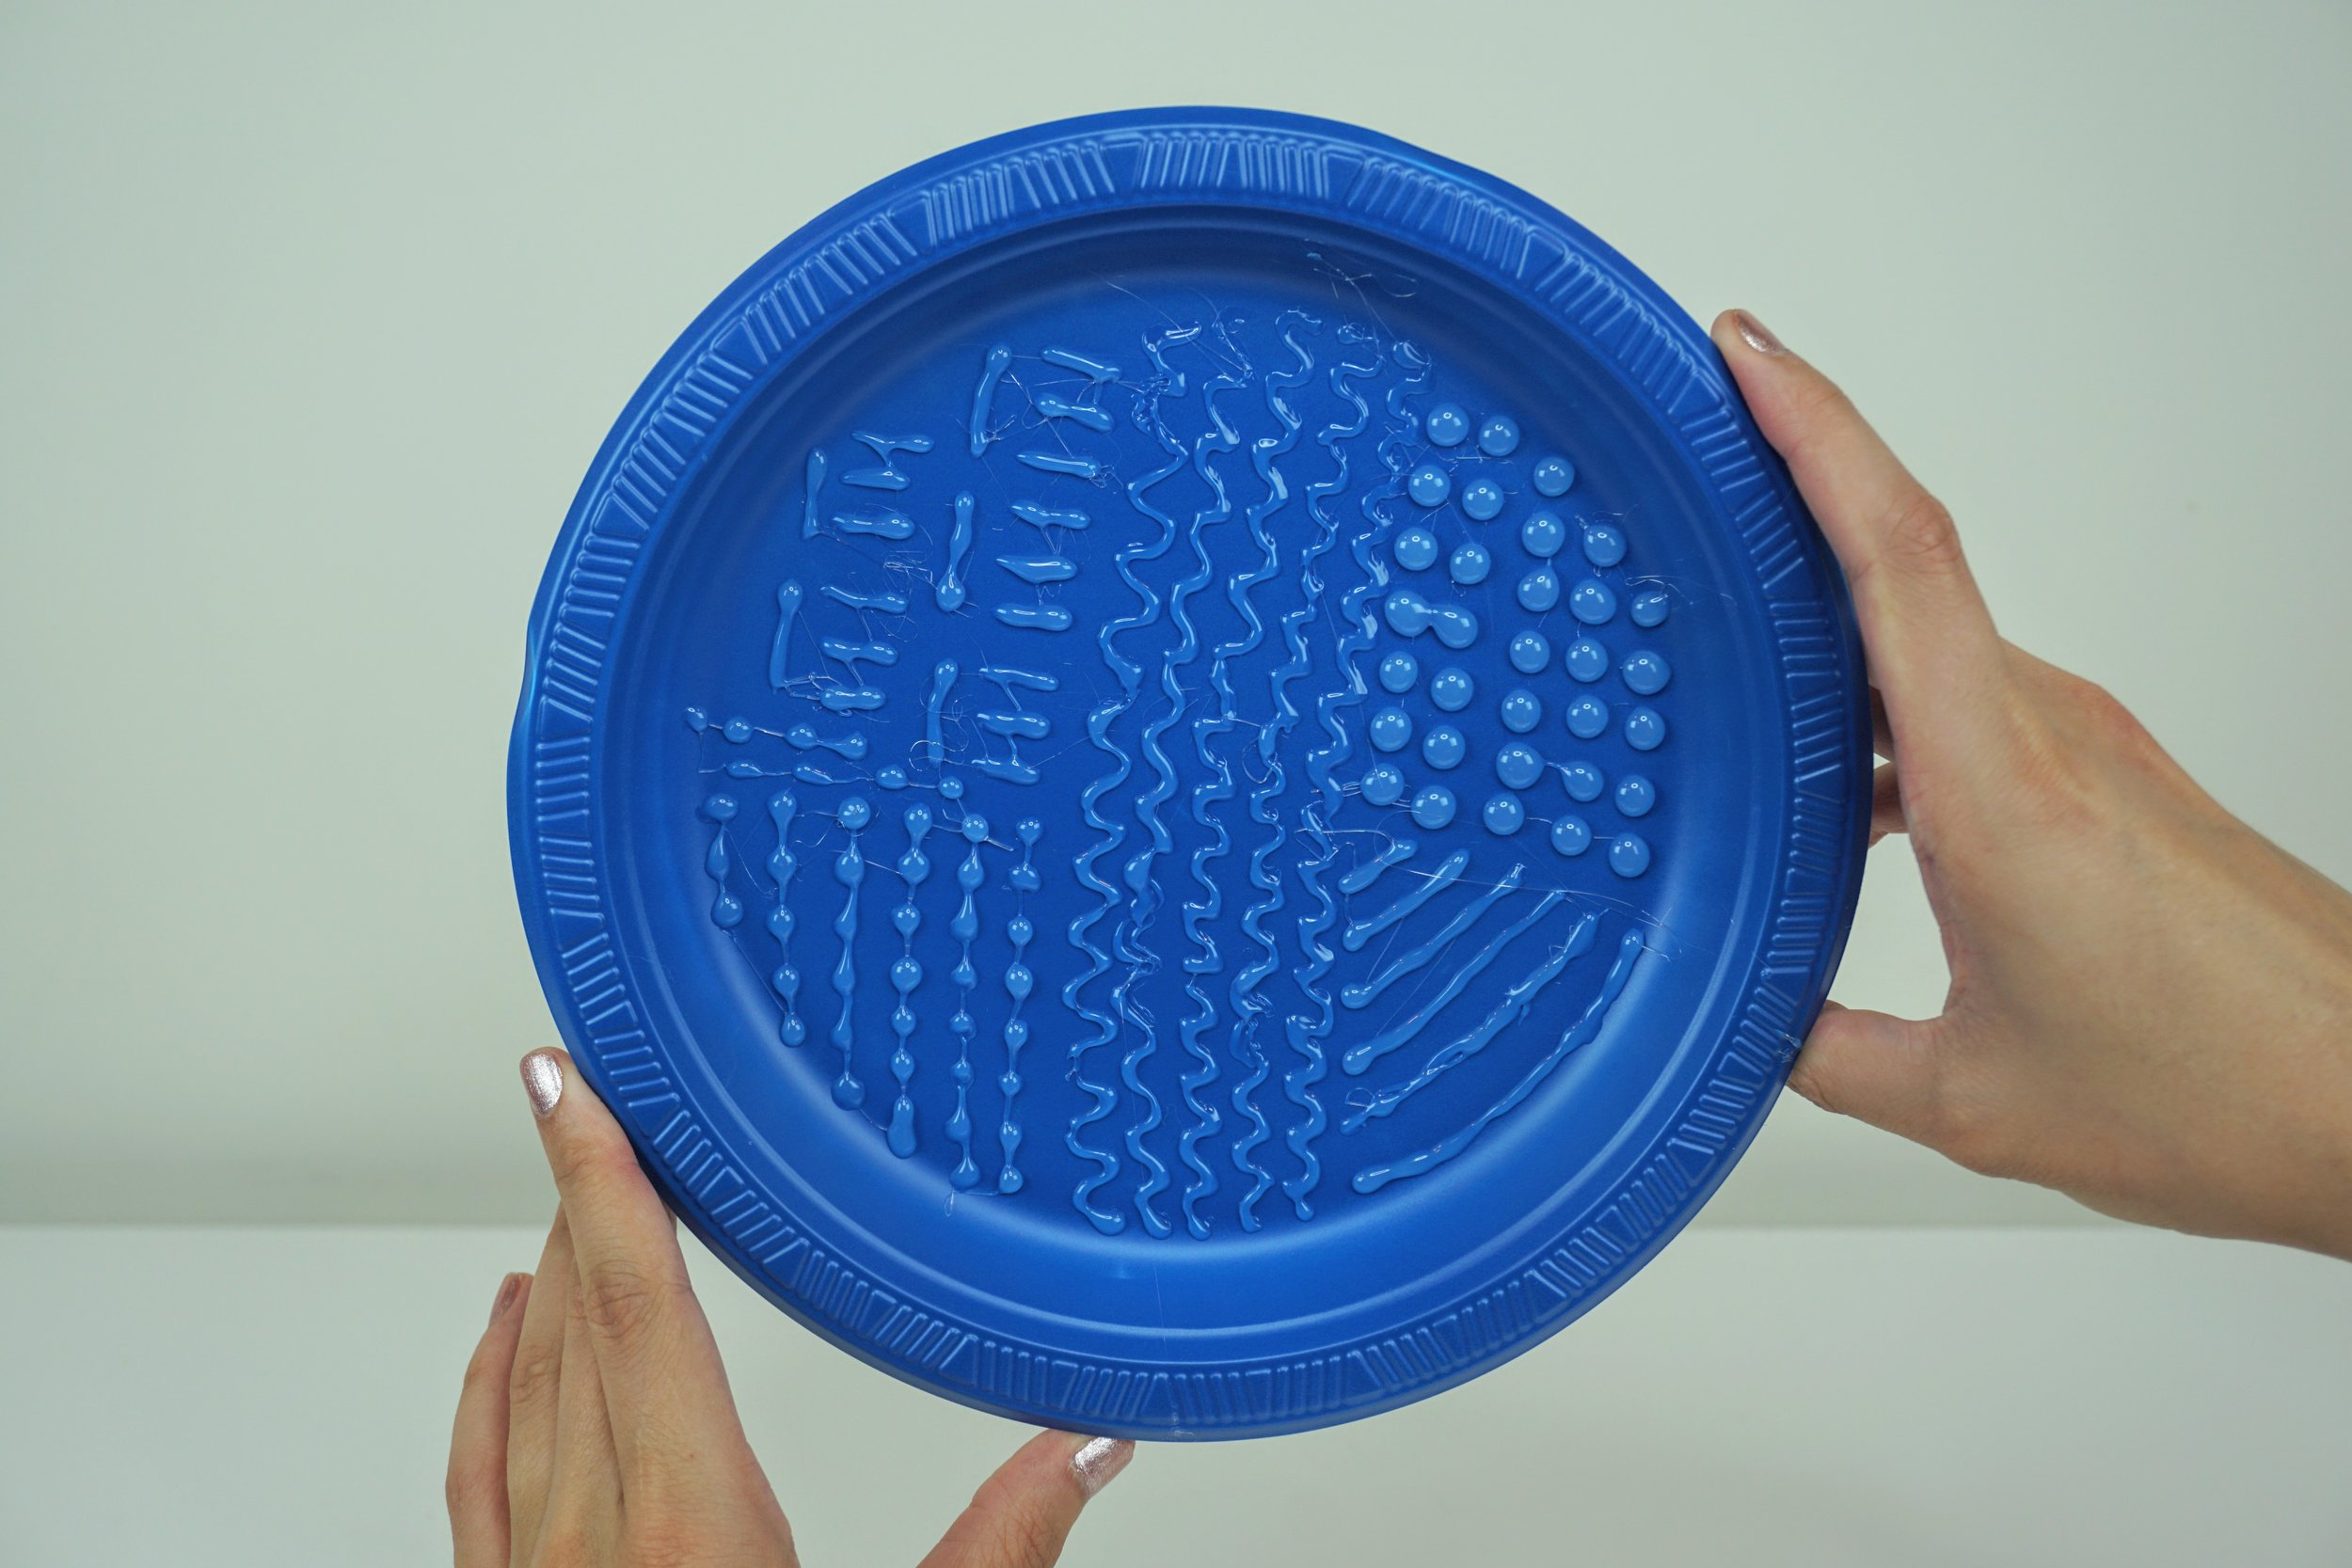 A DIY makeup brushes cleaning mat: a blue plastic plate that has squiggly lines on it.